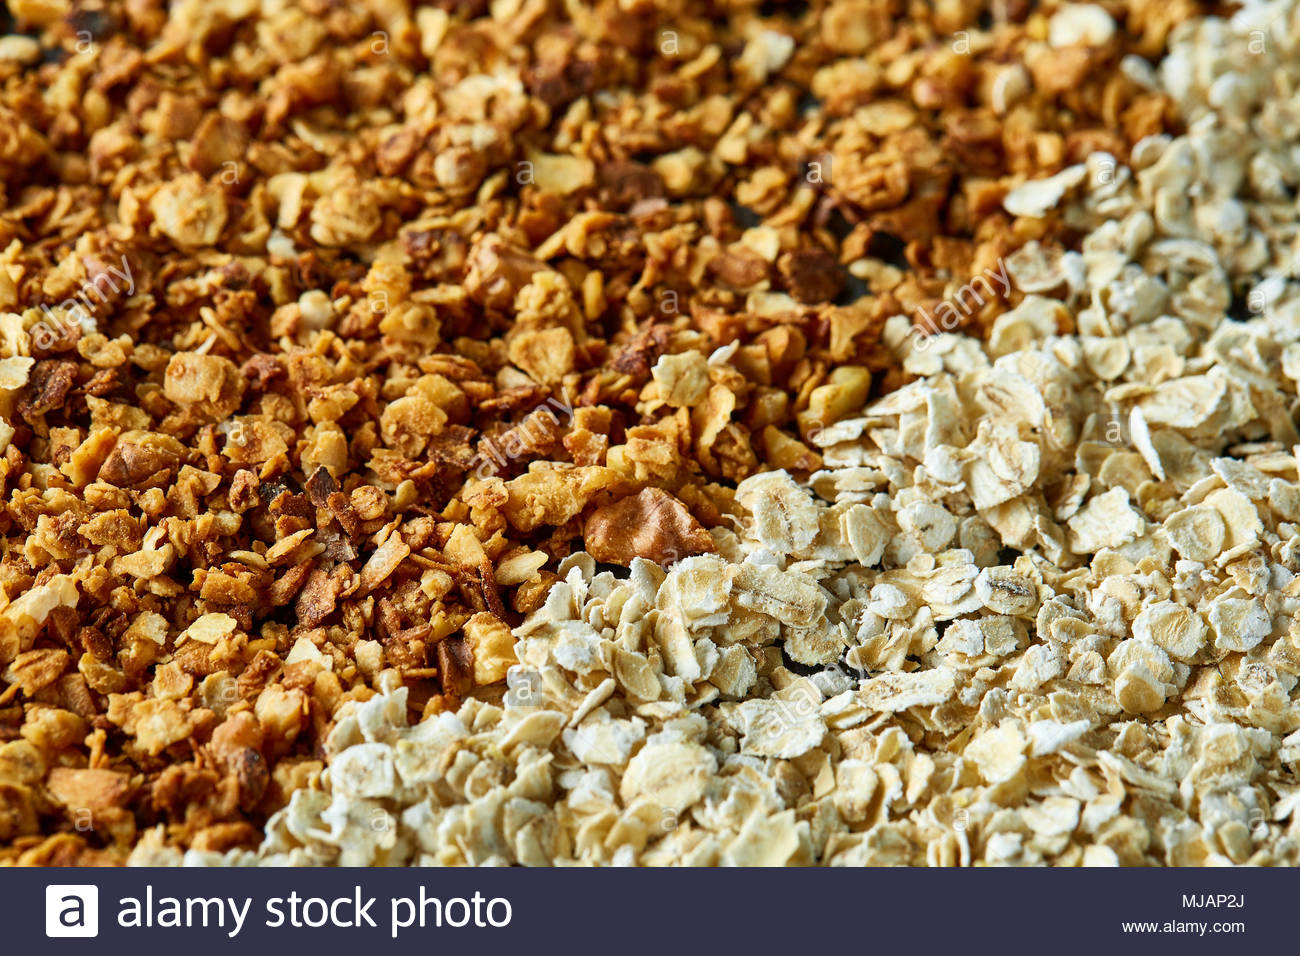 Healthy mix of granola and oatmeal on dark background top view 1300x956